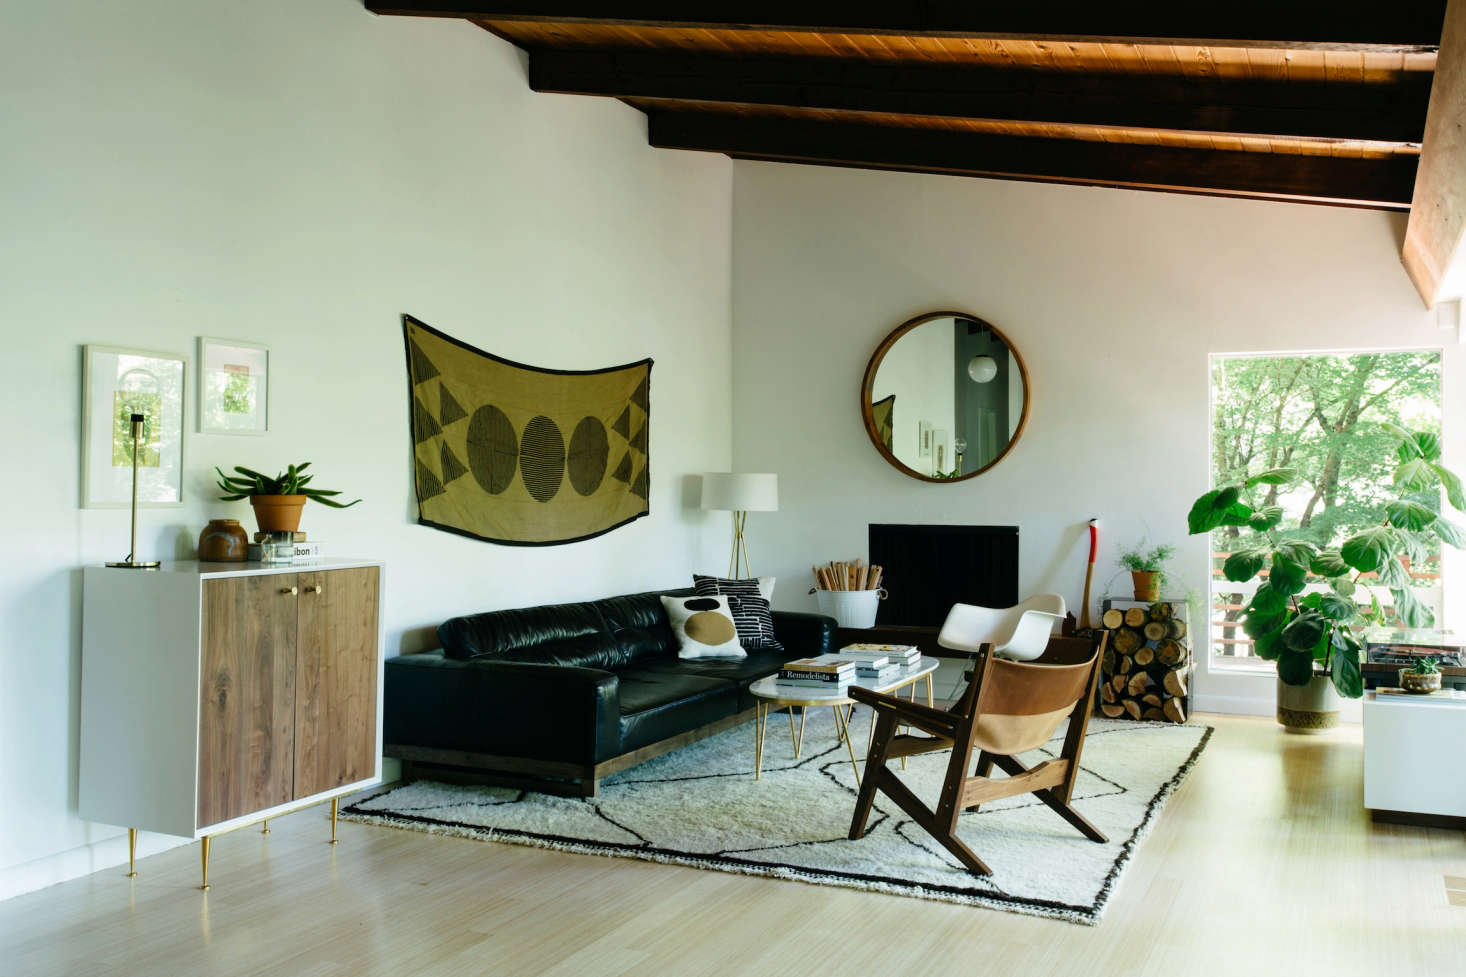 modern look living room designs with green carpet steal this midcentury in portland oregon a large open space is split between the dining not pictured here and